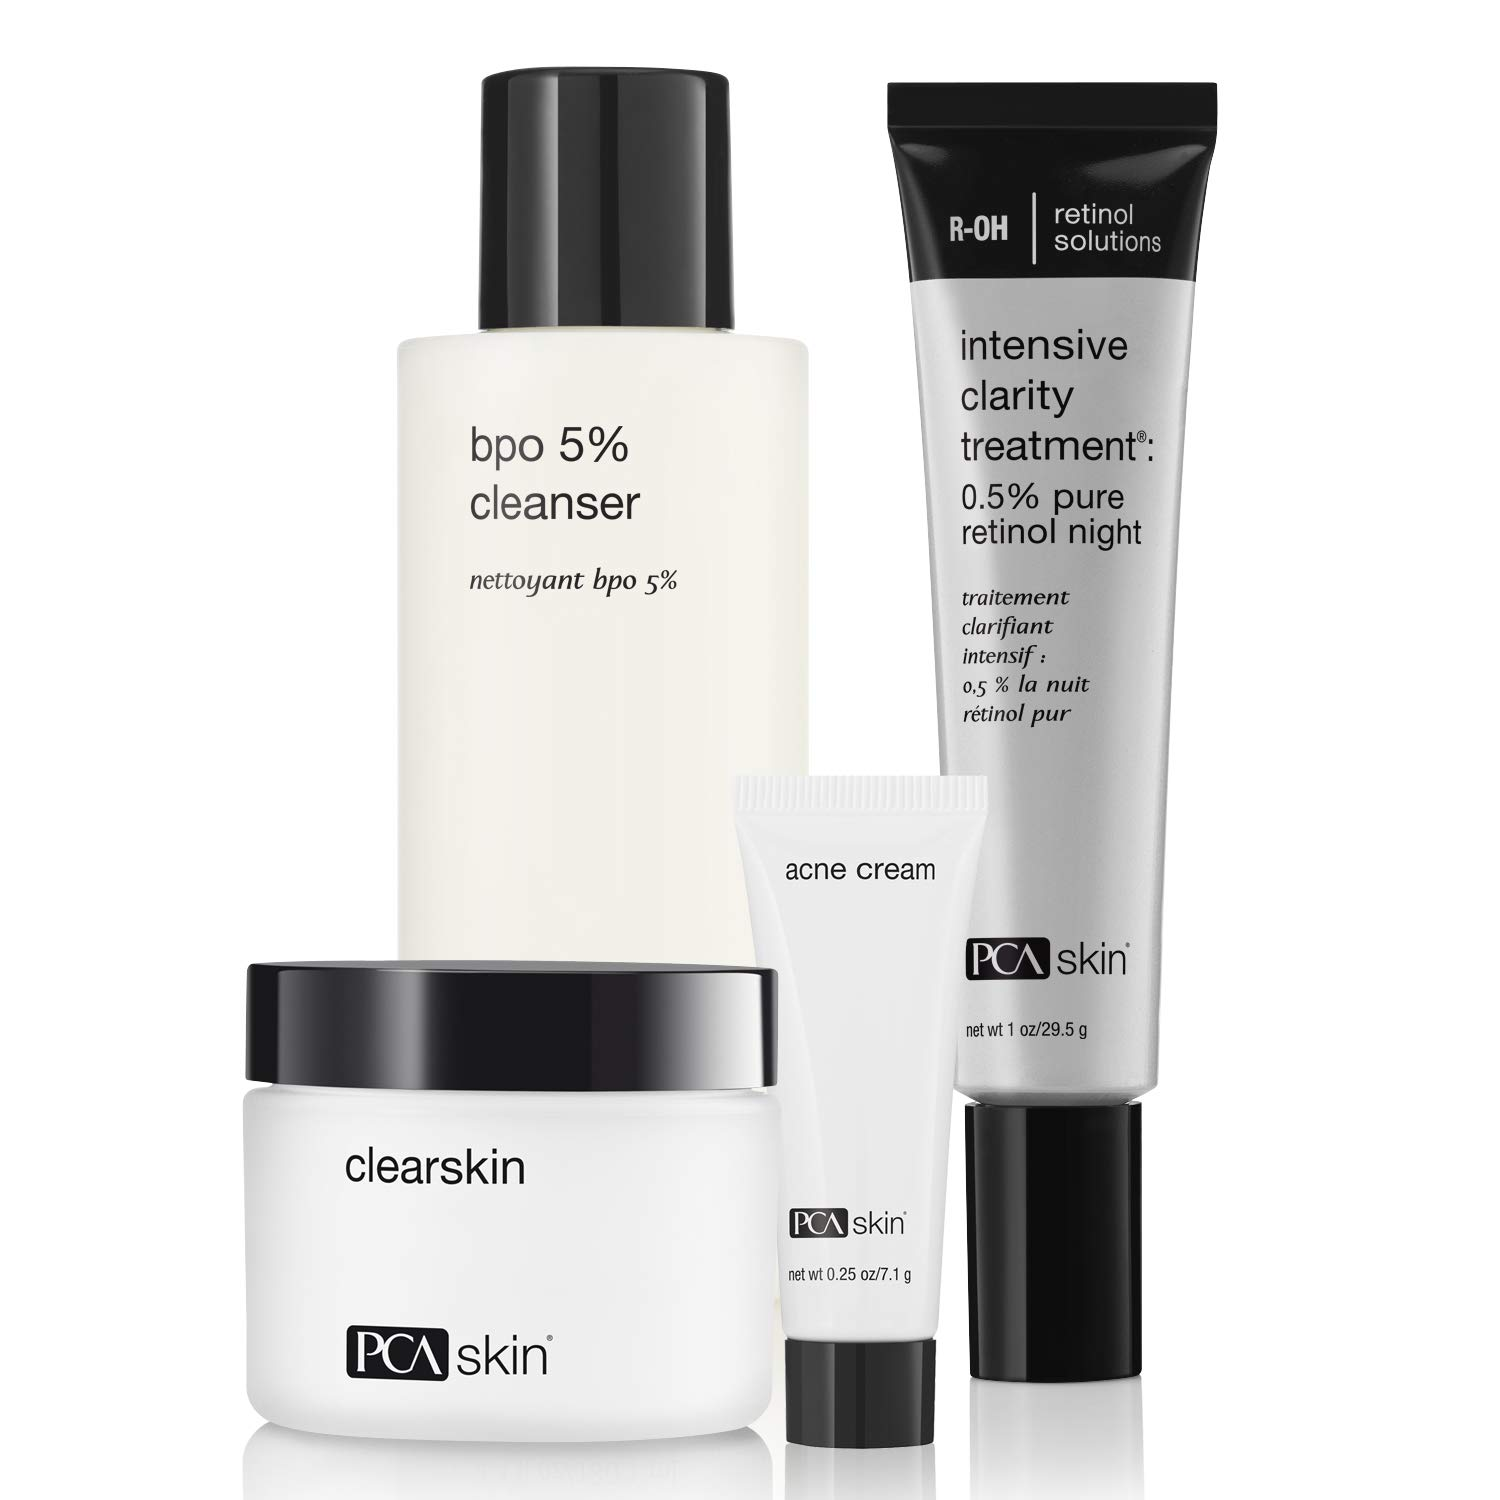 PCA SKIN The Acne Control Regimen - Four Step Routine for Clear Skin (Includes Cleanser, Moisturizer, Acne Cream and Retinol Treatment)